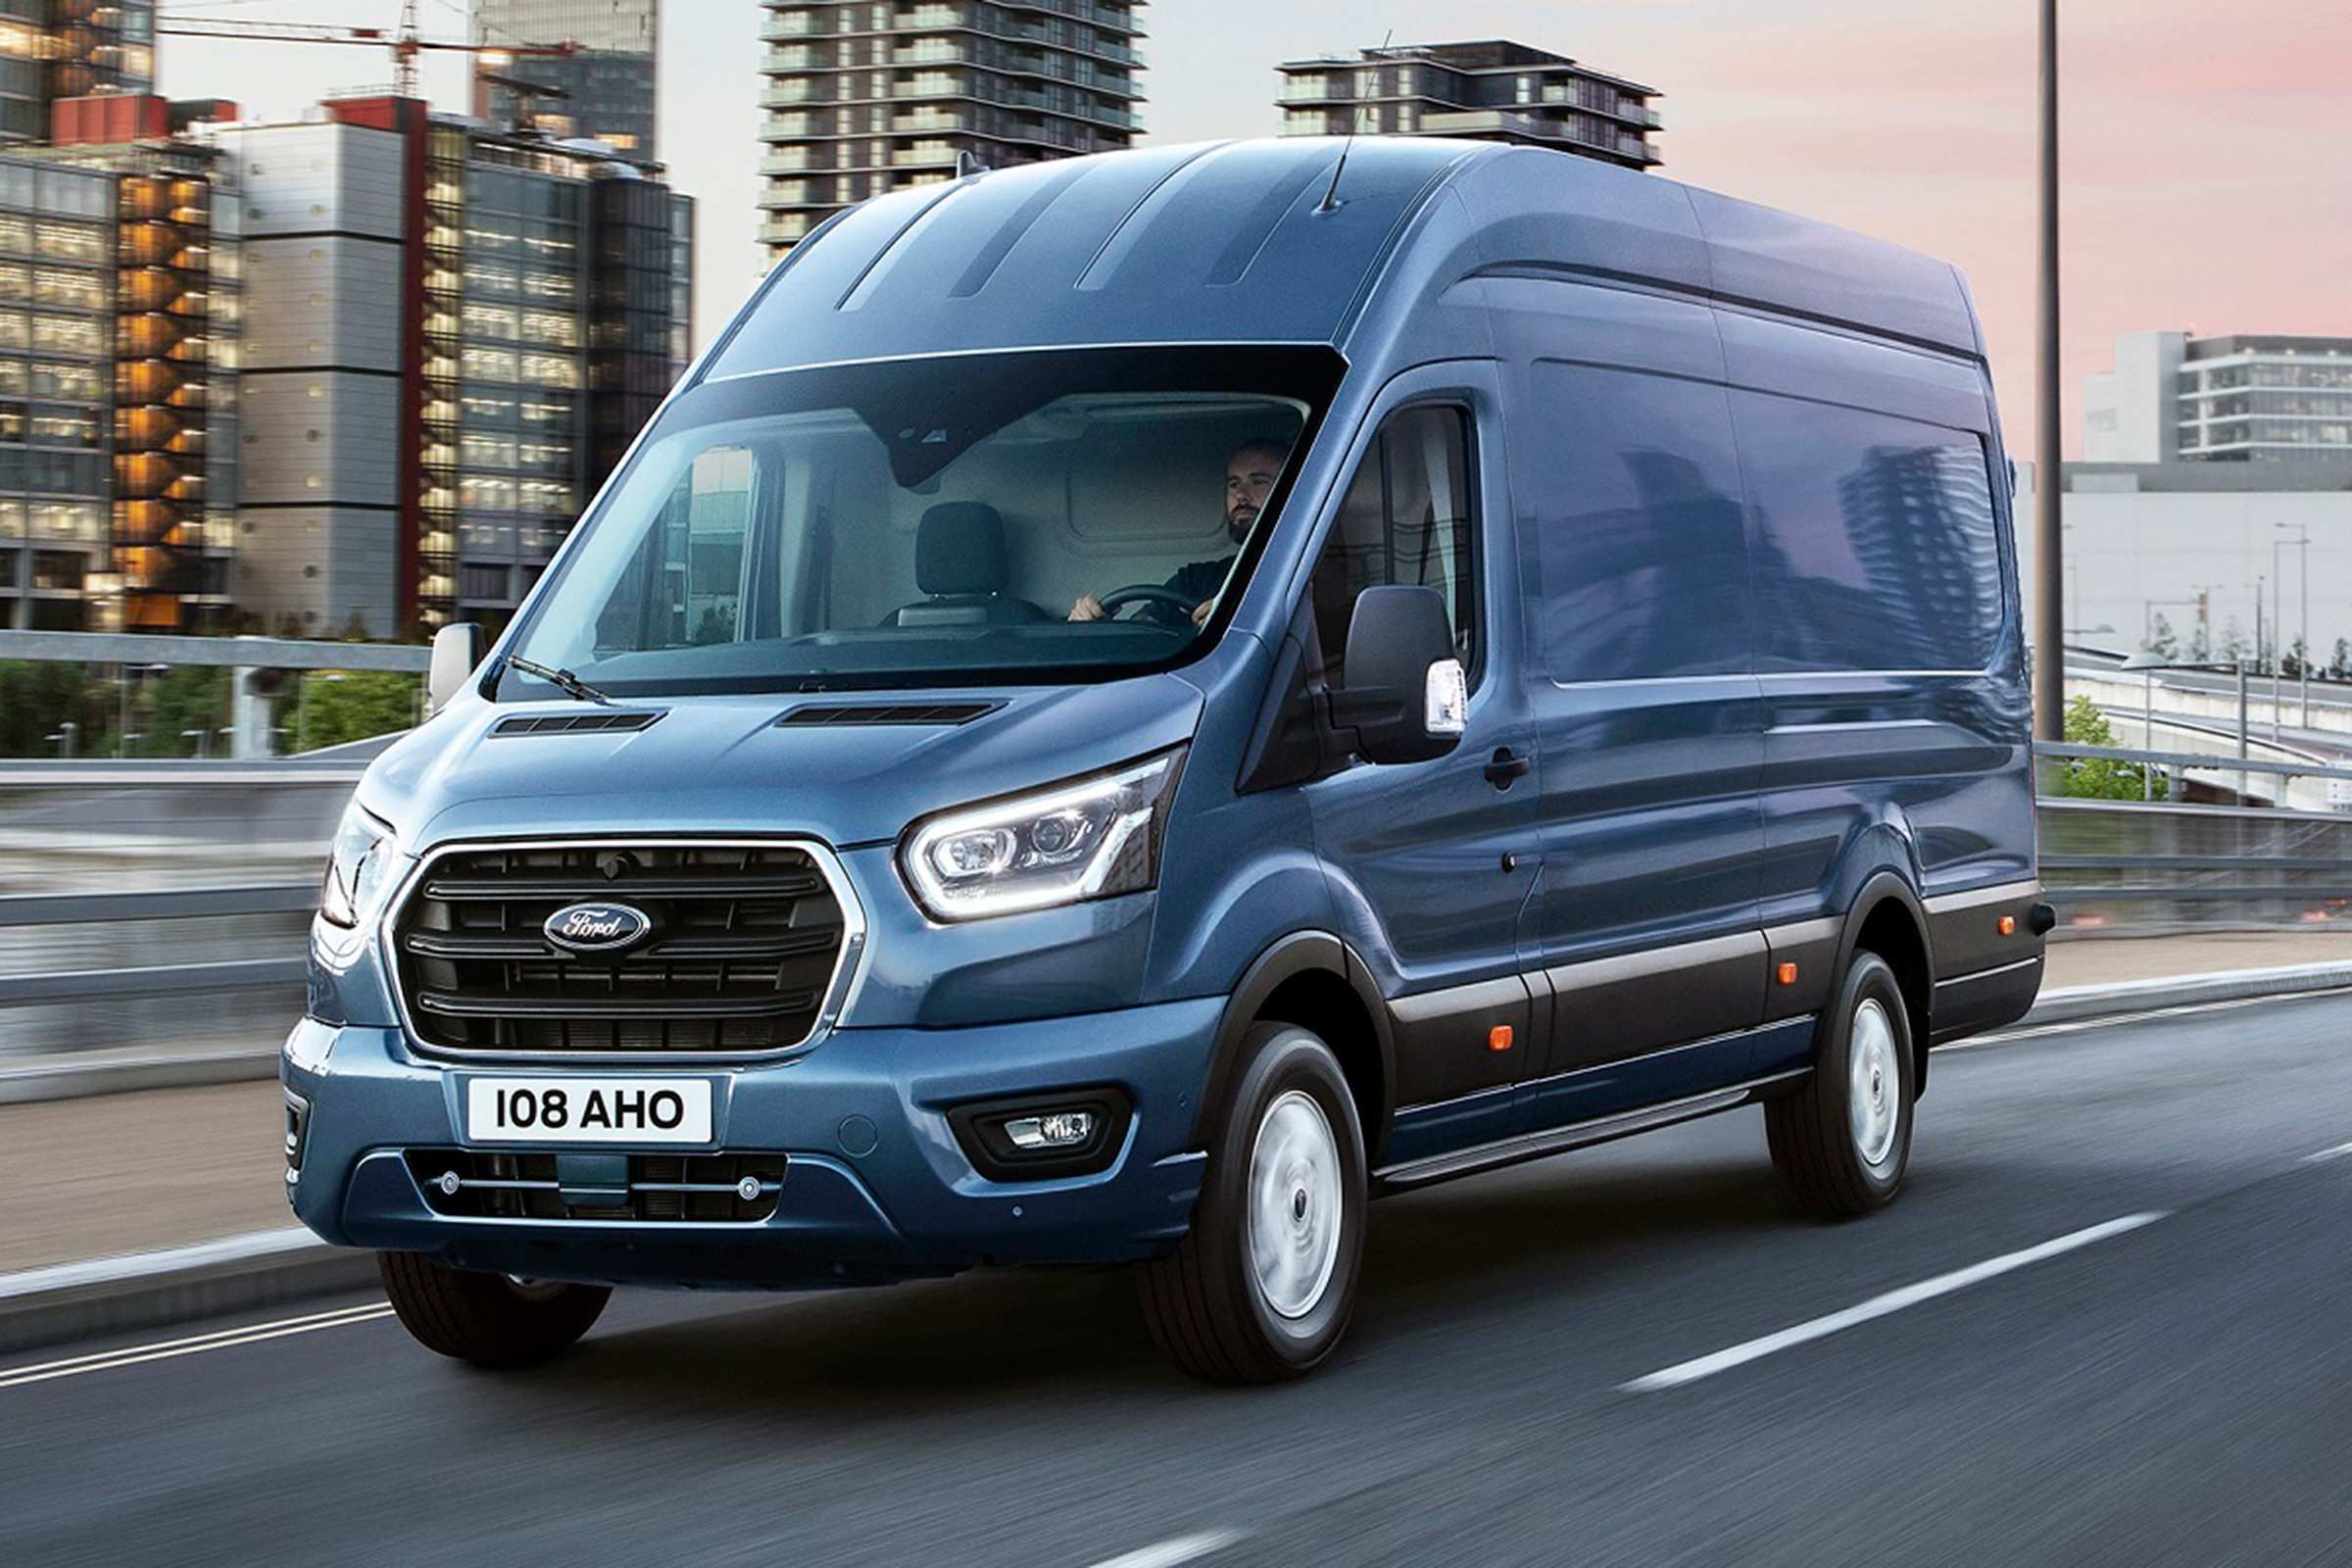 24 All New Best 2019 Ford Transit Cargo Van Review And Price Release Date with Best 2019 Ford Transit Cargo Van Review And Price